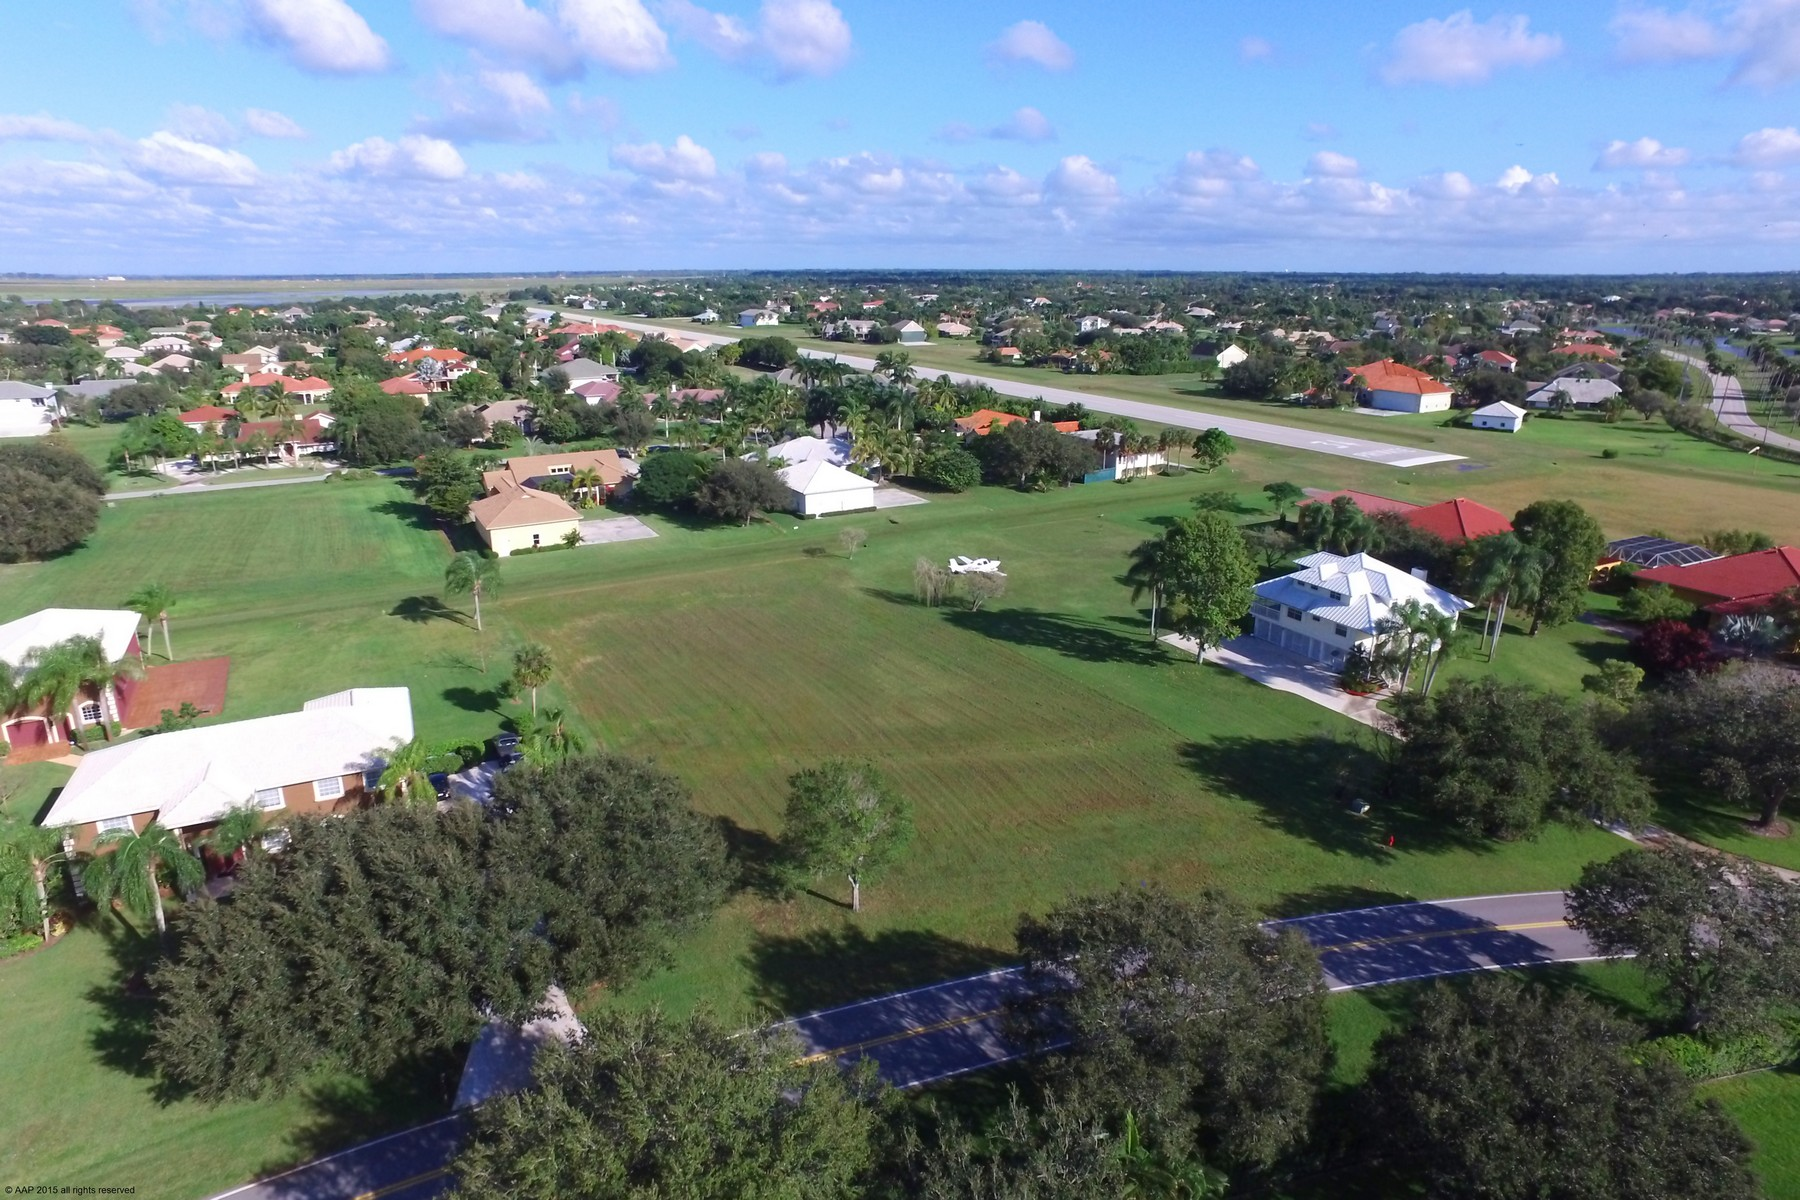 Land for Sale at 2920 Greenbriar Blvd Aero Club, Wellington, Florida, 33414 United States